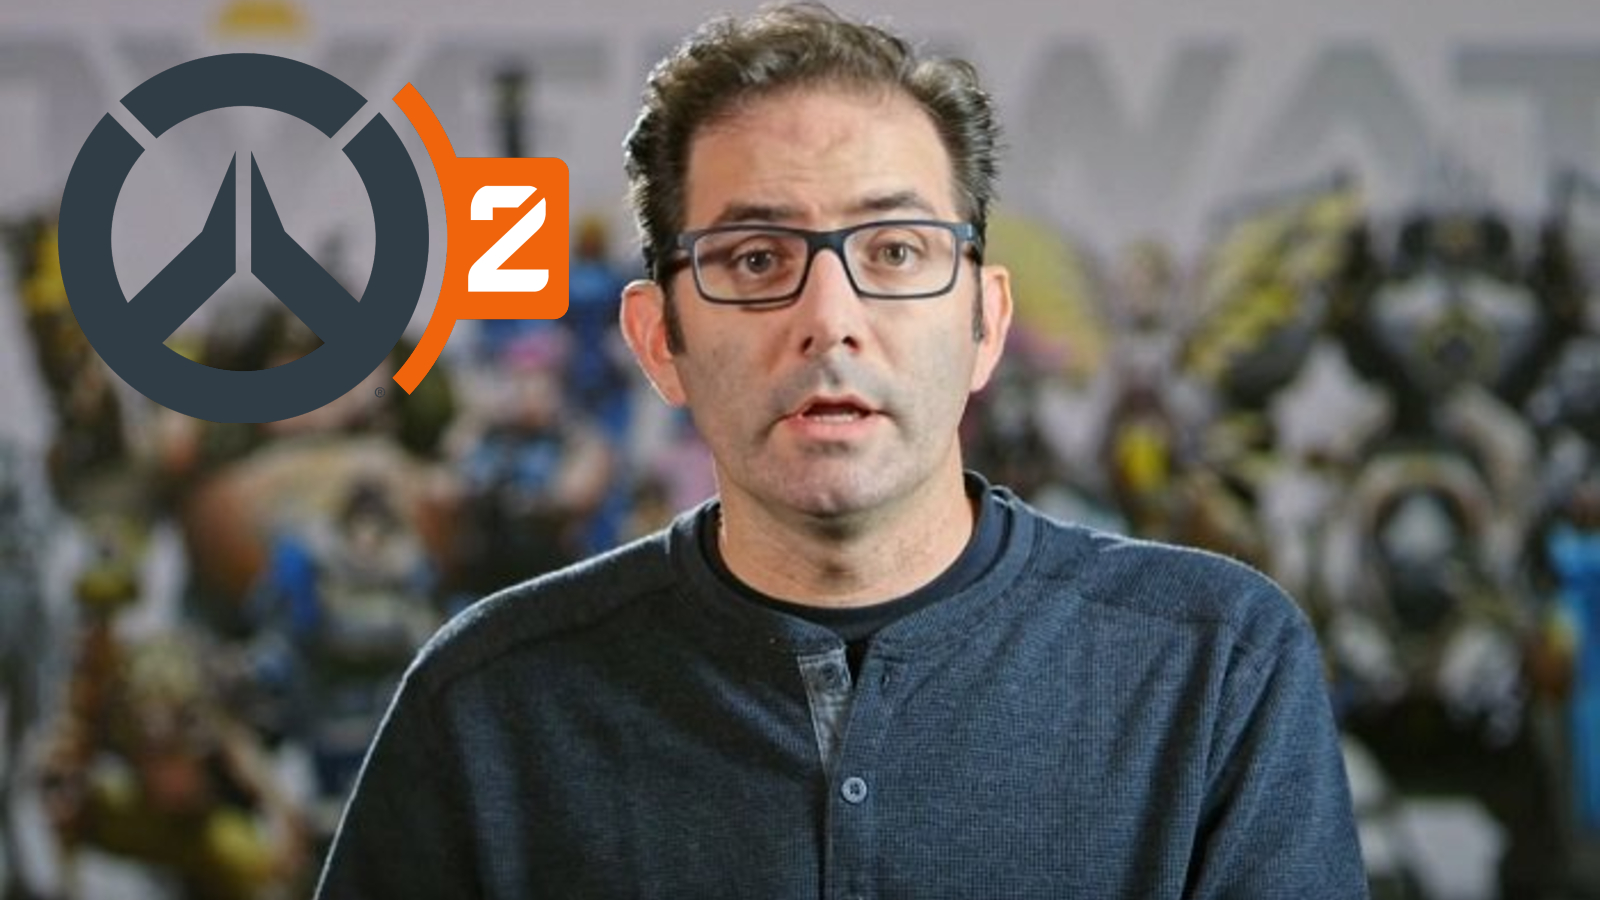 Jeff Kaplan responds to OW 2 delay